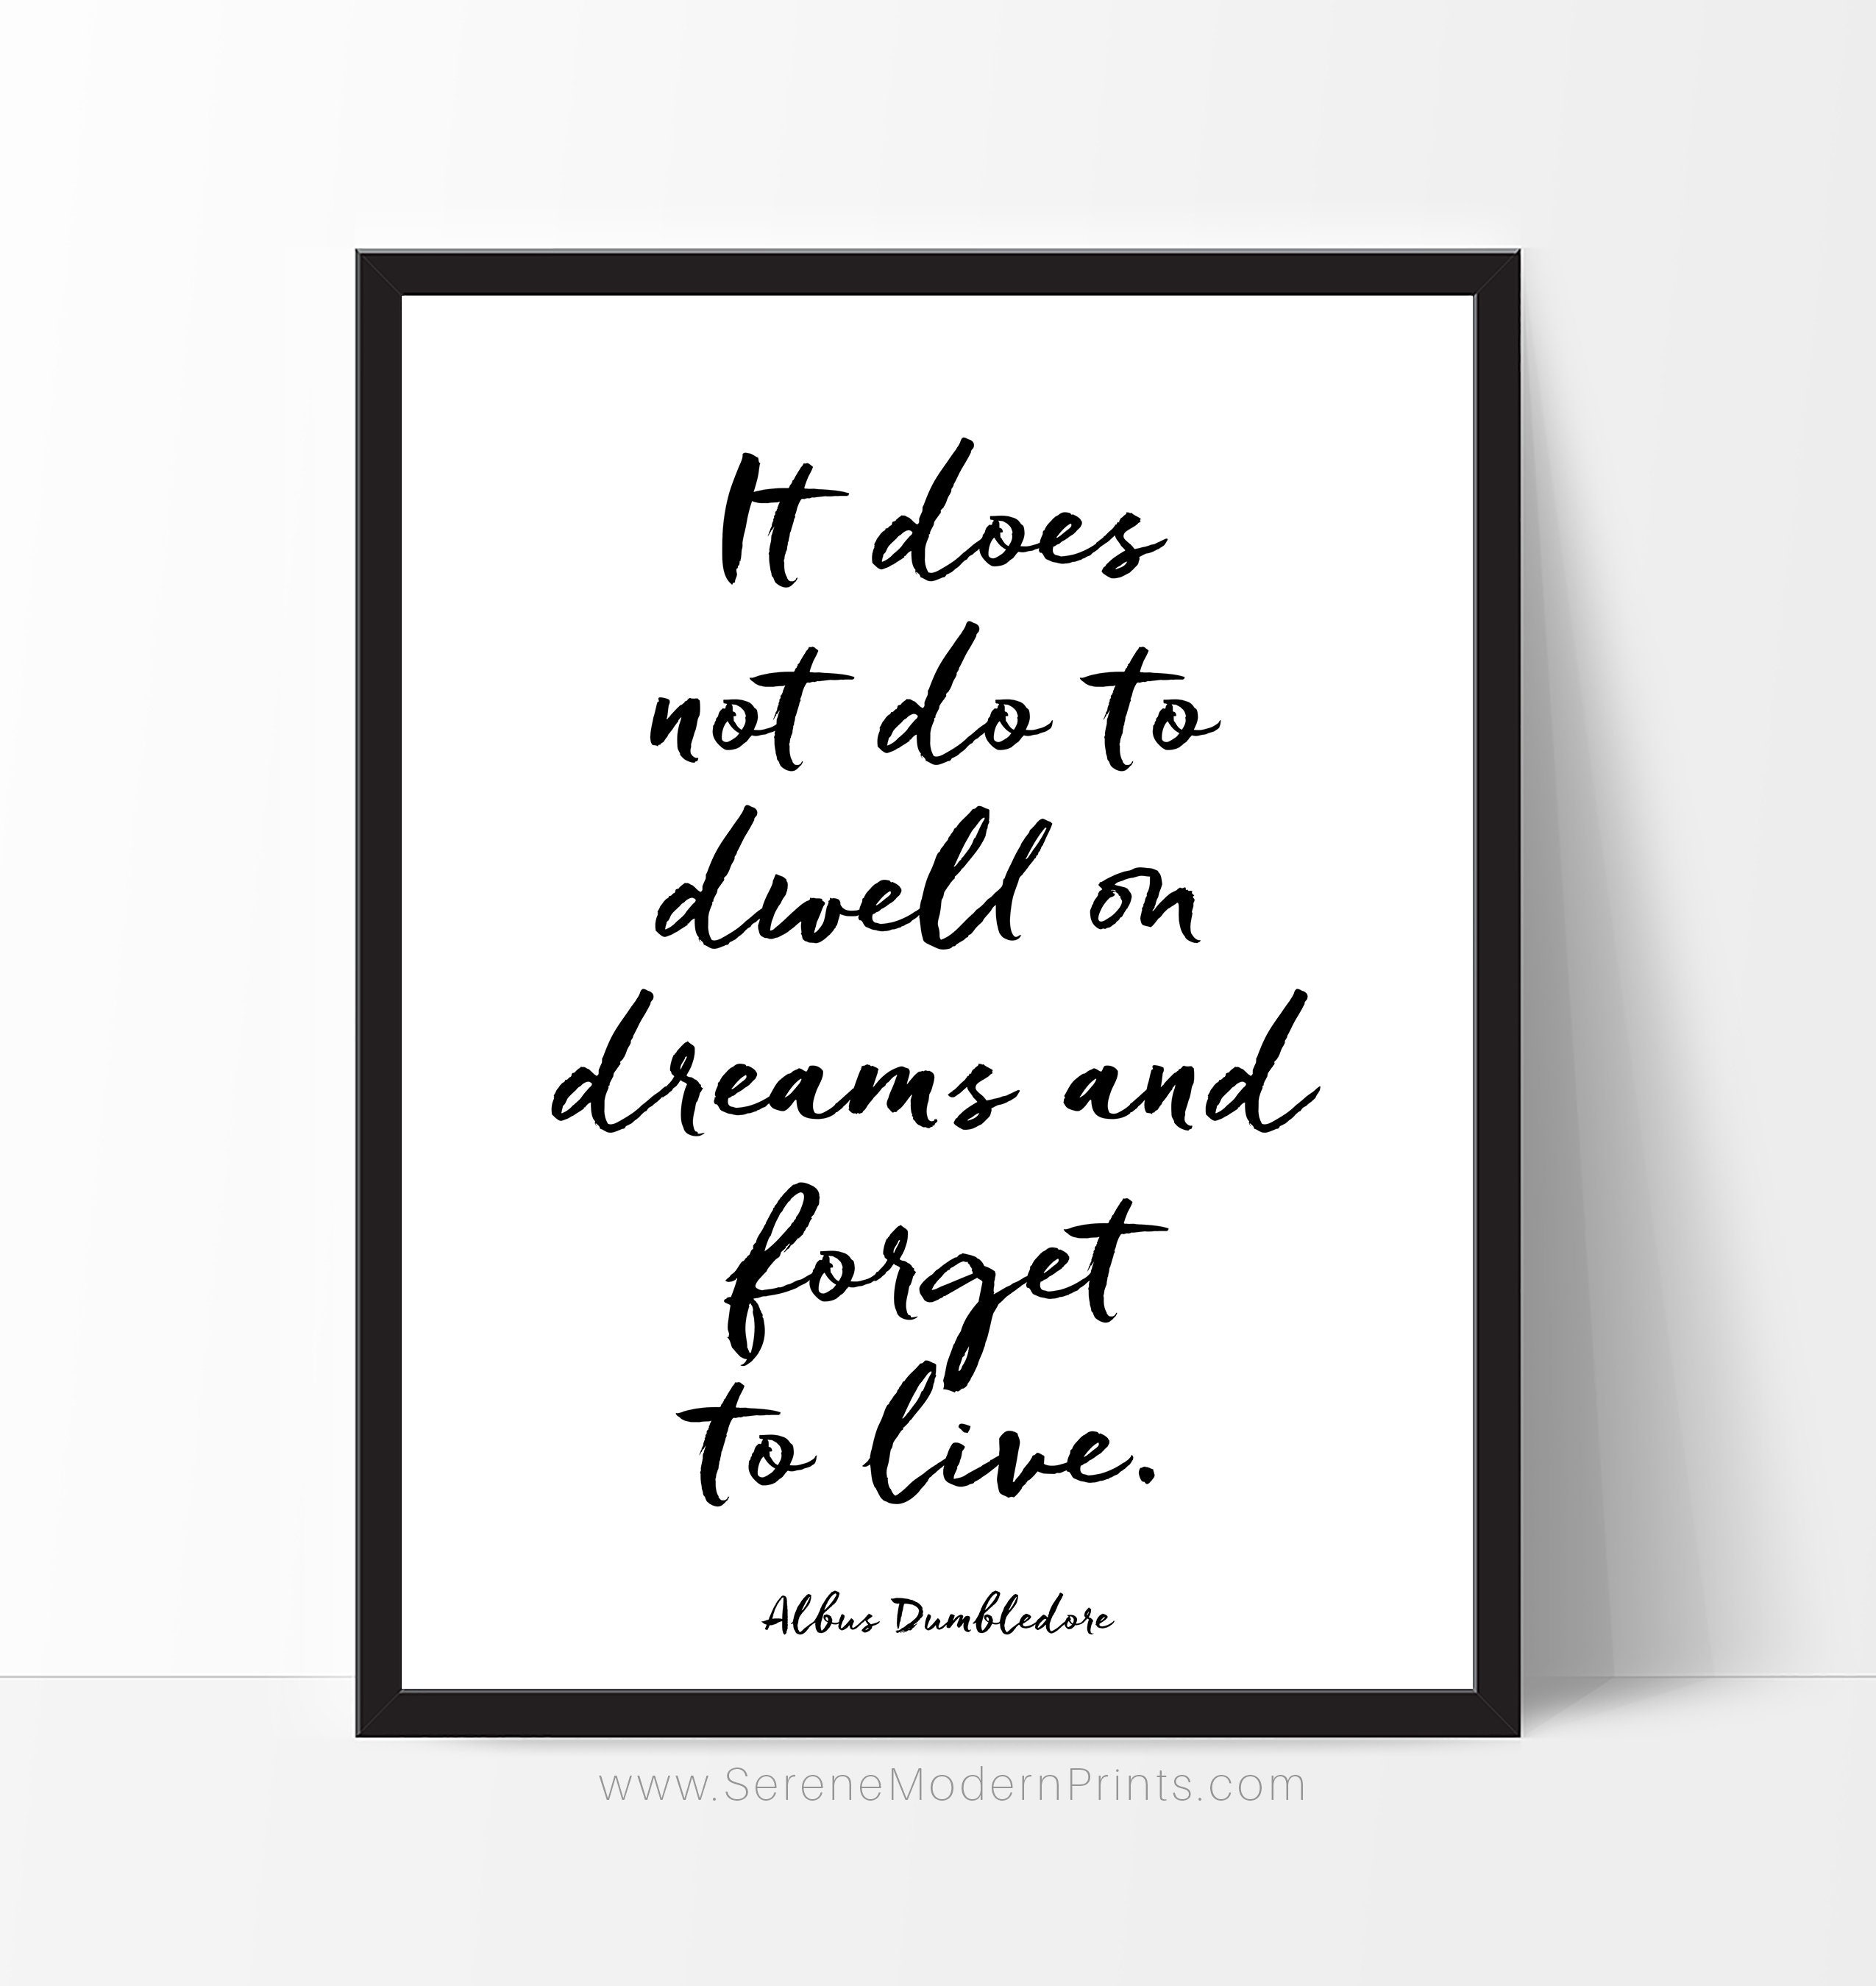 It does not do Harry Potter Dumbledore Inspirational Quote | Etsy